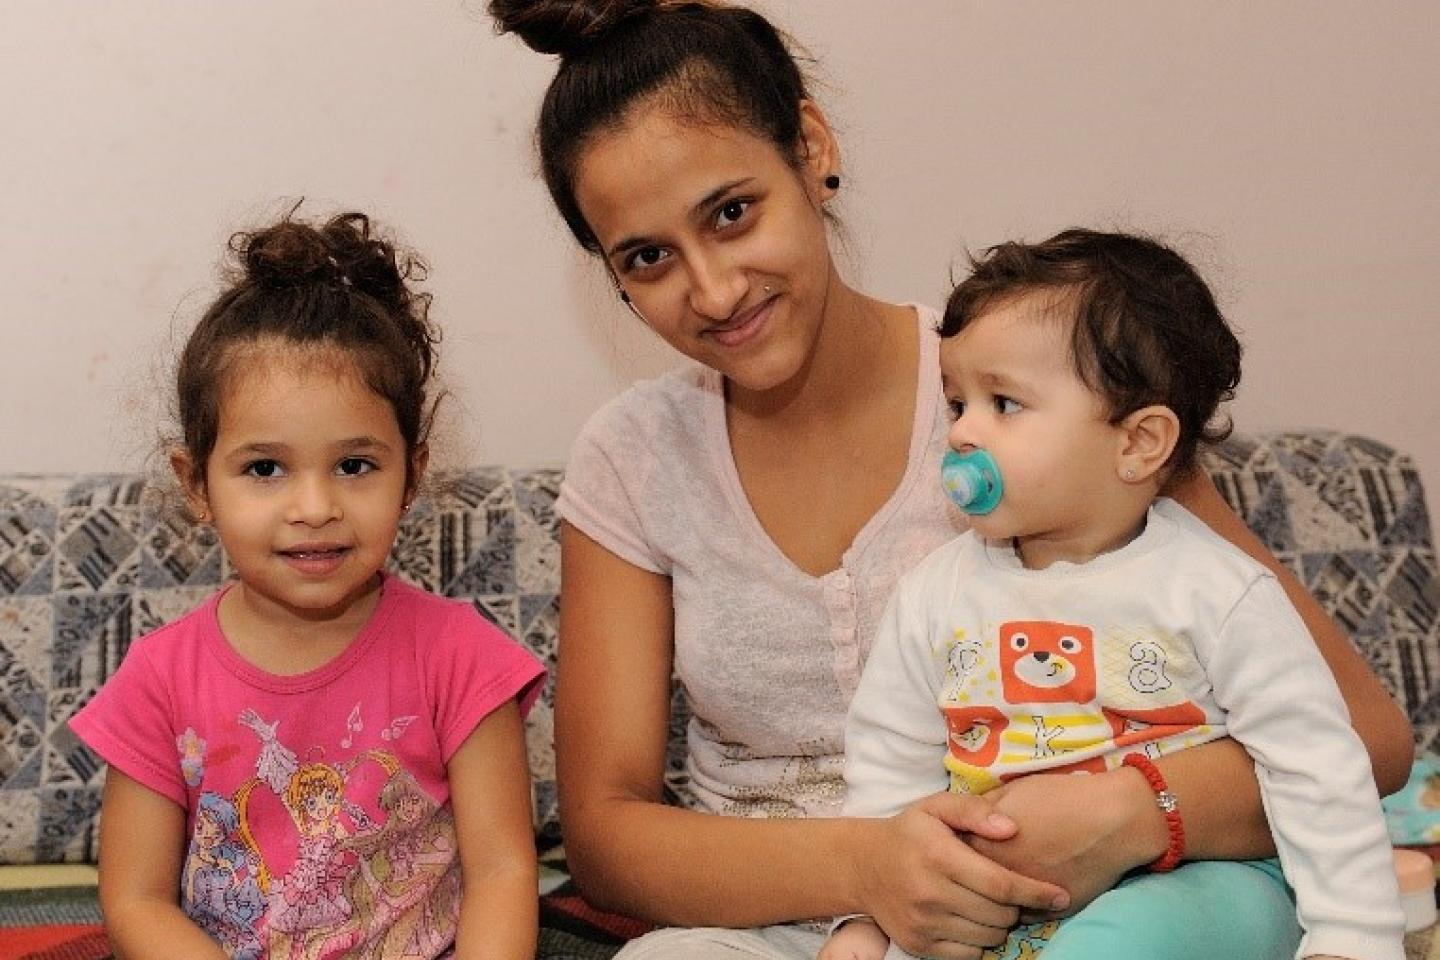 Kristina, with her two children Lejla and Dragoljub, lives in a Roma settlement in Resnik, in Belgrade.